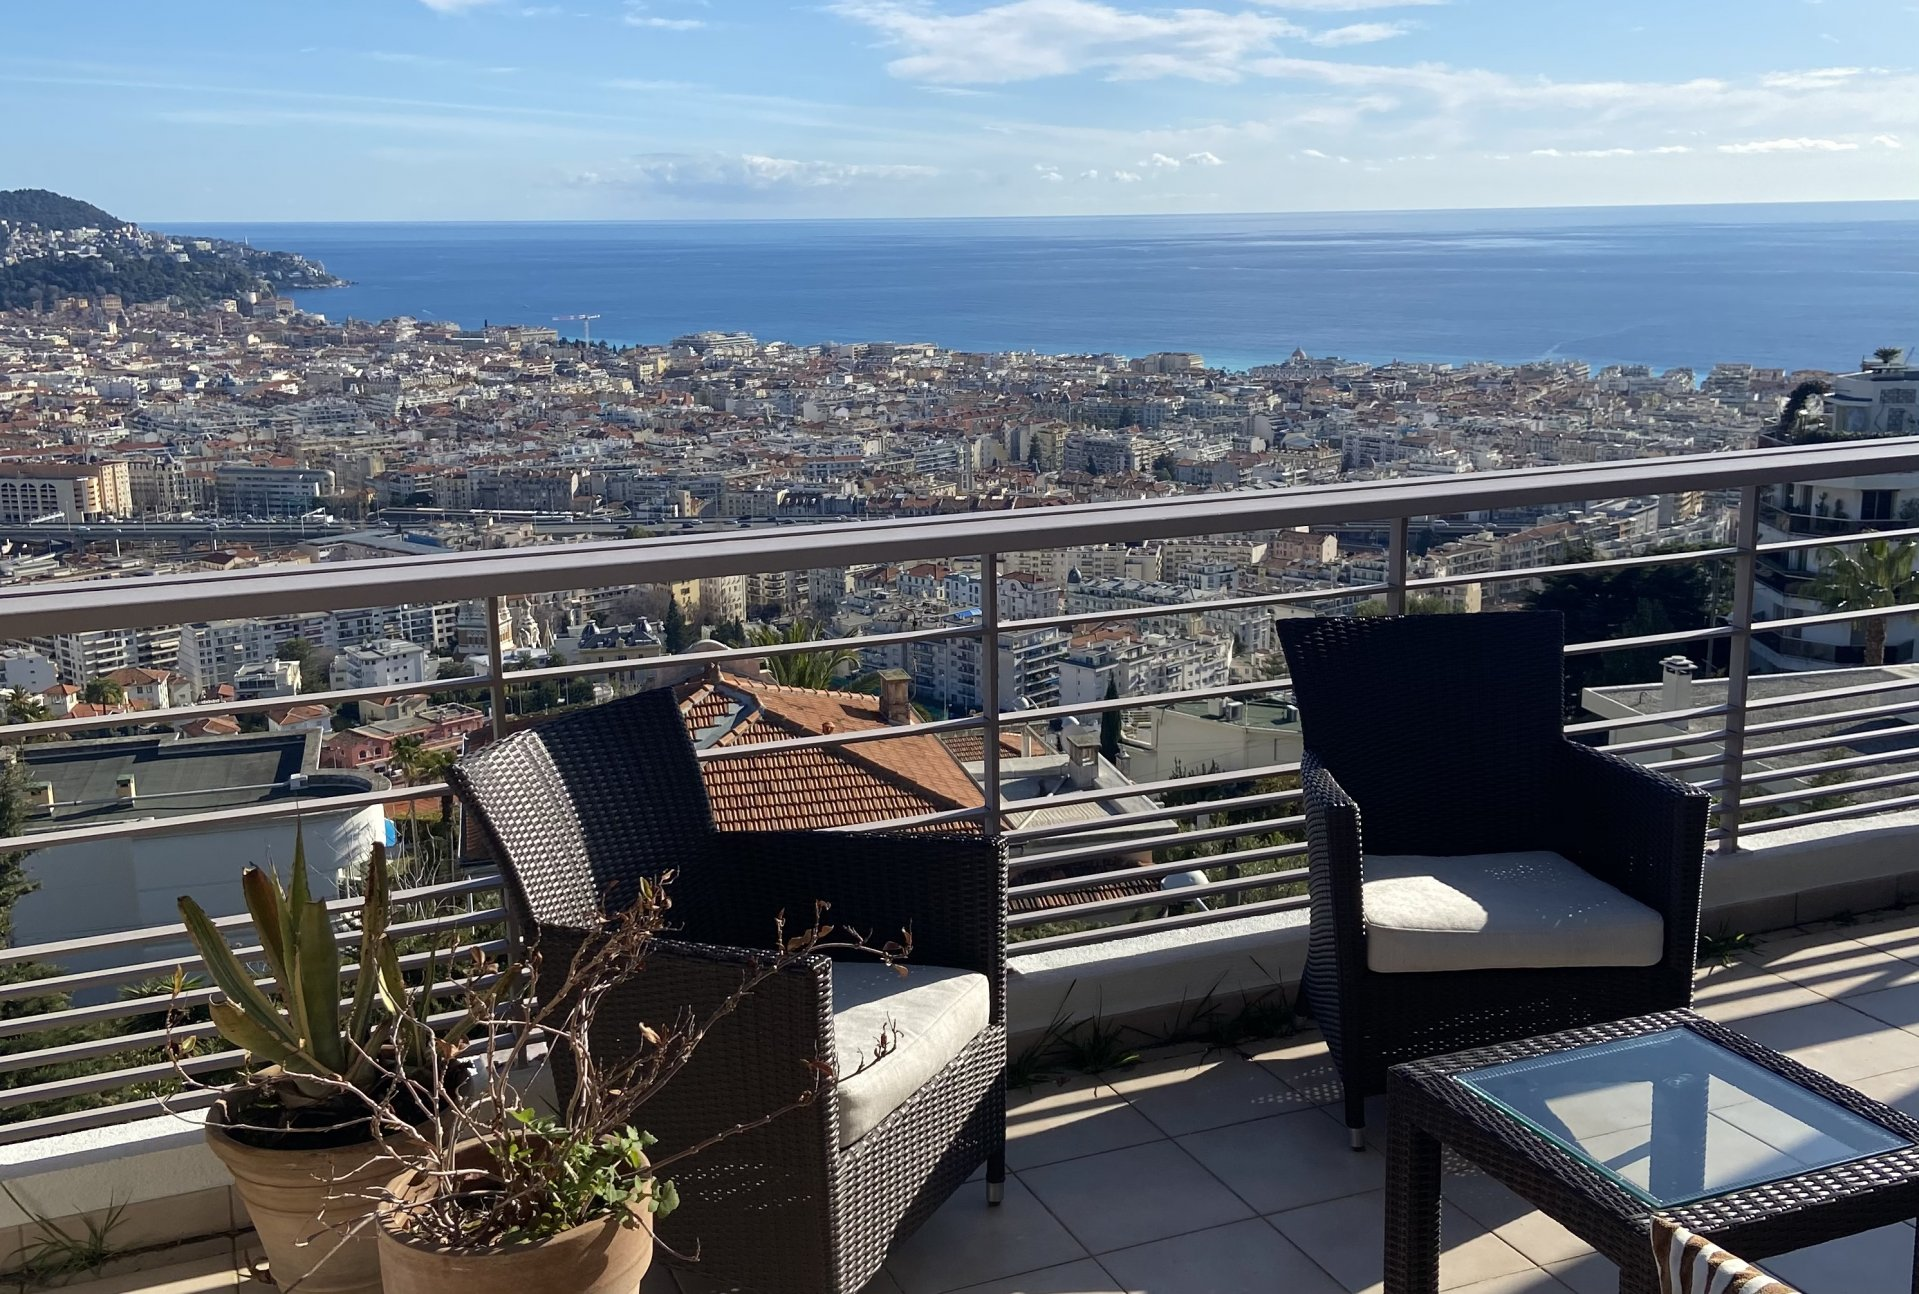 3-bed apartment, terraces, panoramic views, pool, double garage in Nice